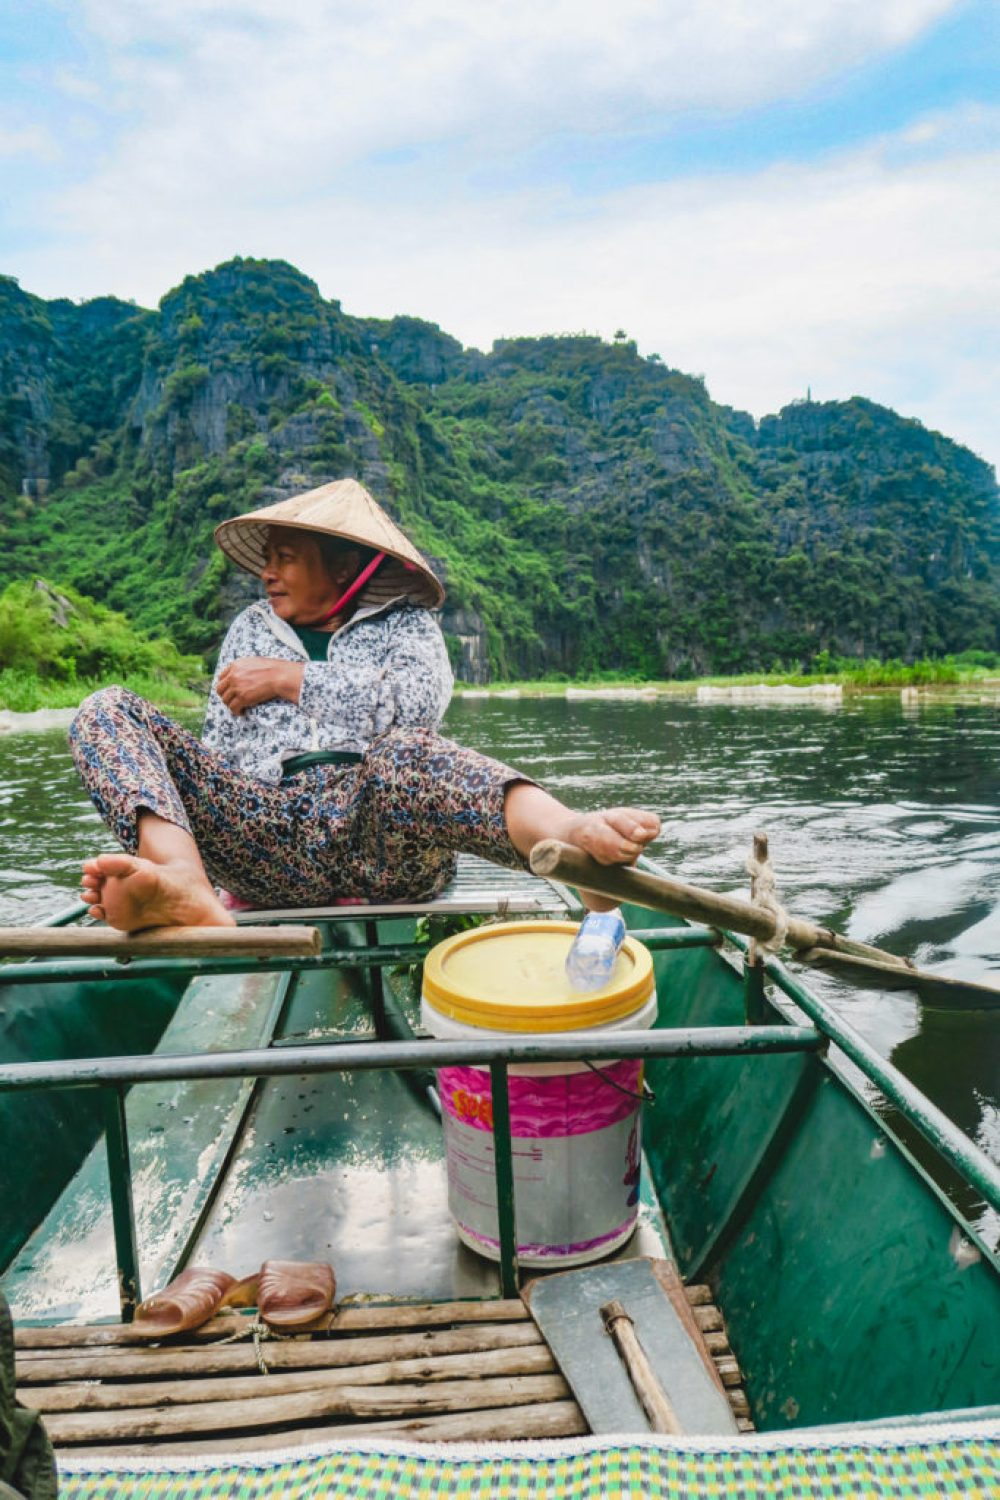 On the Tam Coc boat tour, the rowers are rowing with feet